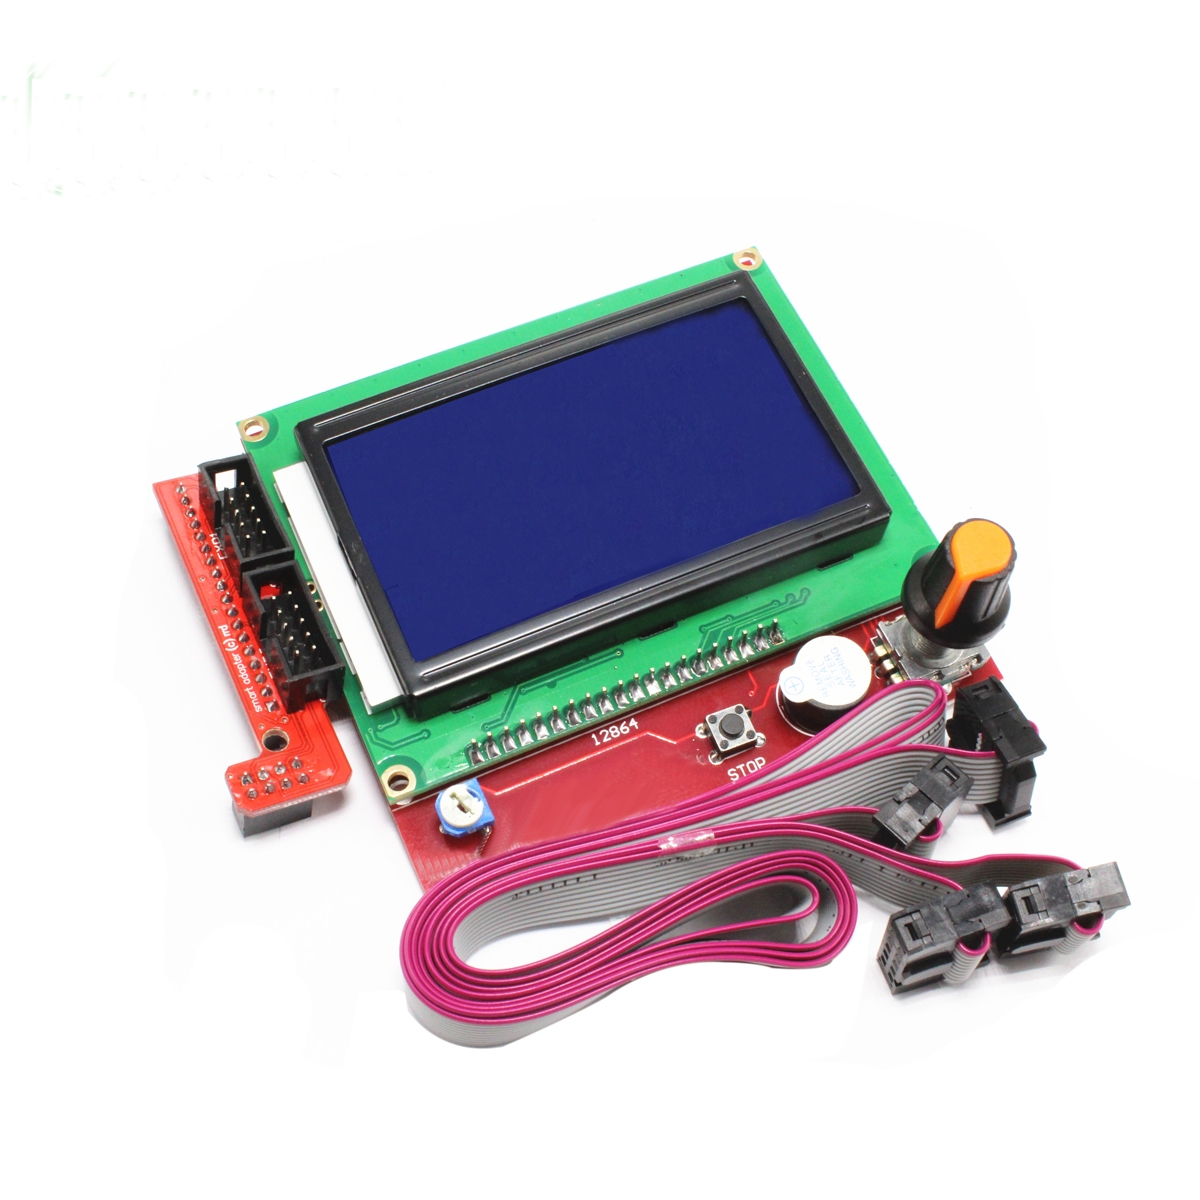 12864 LCD Display  3D Printer Smart Controller RAMPS 1.4 LCD 12864 LCD Control Display Panel Blue Screen For Arduino LCD Display